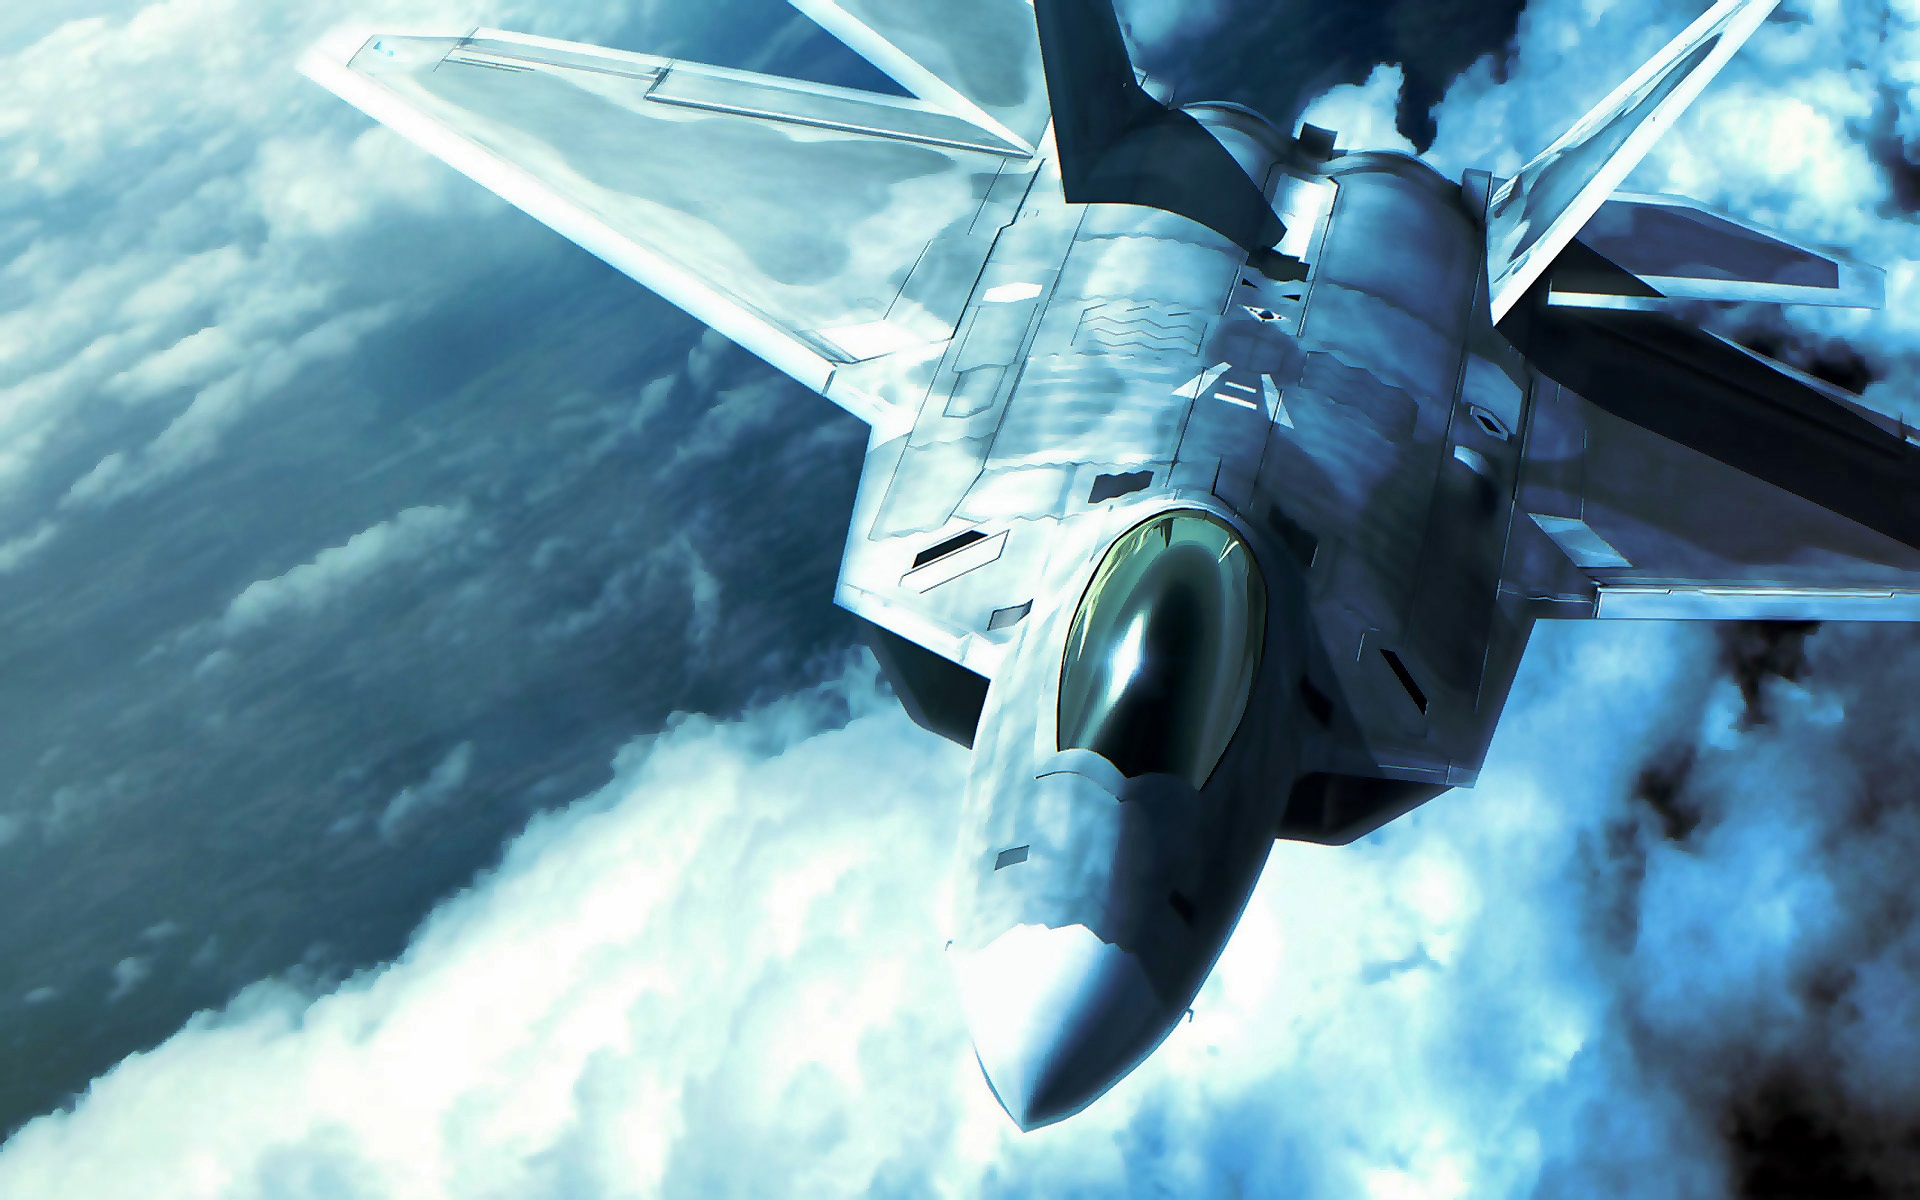 F 22 Raptor in Ace Combat 1792.44 Kb